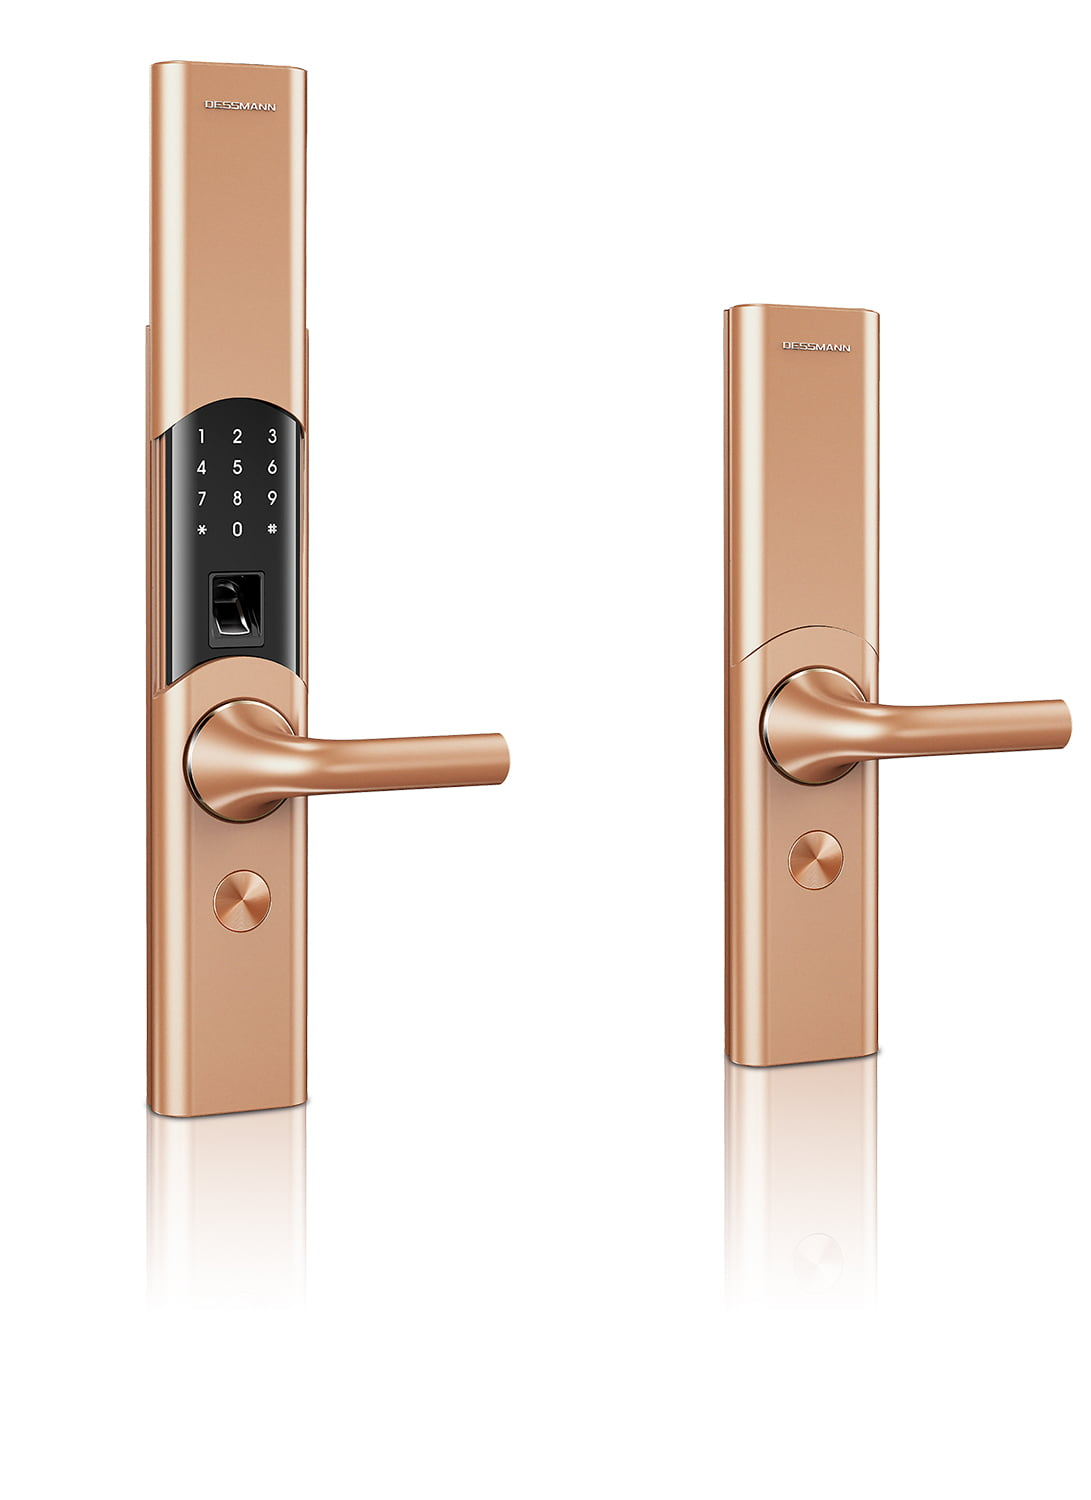 "DESSMANN (China) Machinery & Electronic Co., Ltd  ""T86-NB Smart Lock"""